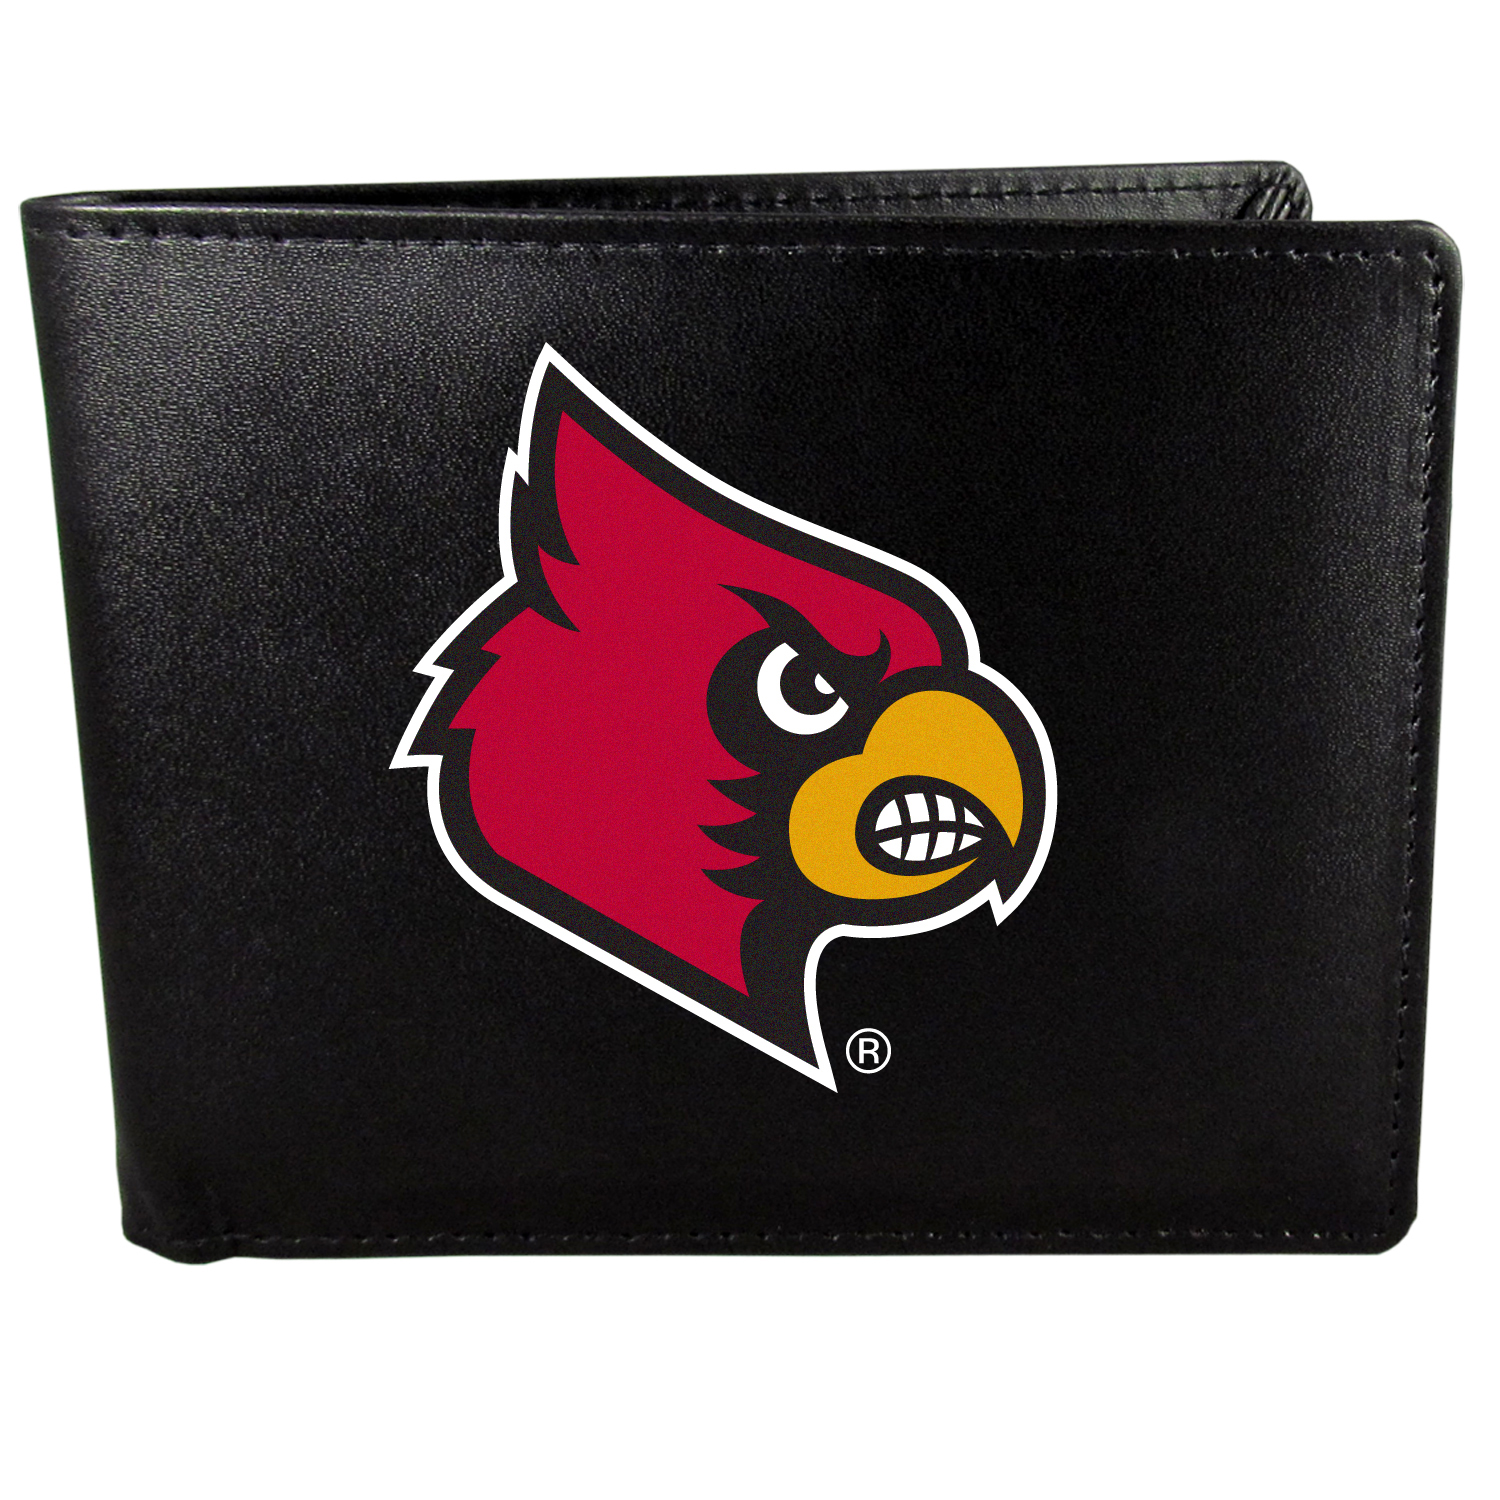 Louisville Cardinals Bi-fold Wallet Large Logo - Sports fans do not have to sacrifice style with this classic bi-fold wallet that sports the Louisville Cardinals extra large logo. This men's fashion accessory has a leather grain look and expert craftmanship for a quality wallet at a great price. The wallet features inner credit card slots, windowed ID slot and a large billfold pocket. The front of the wallet features a printed team logo.